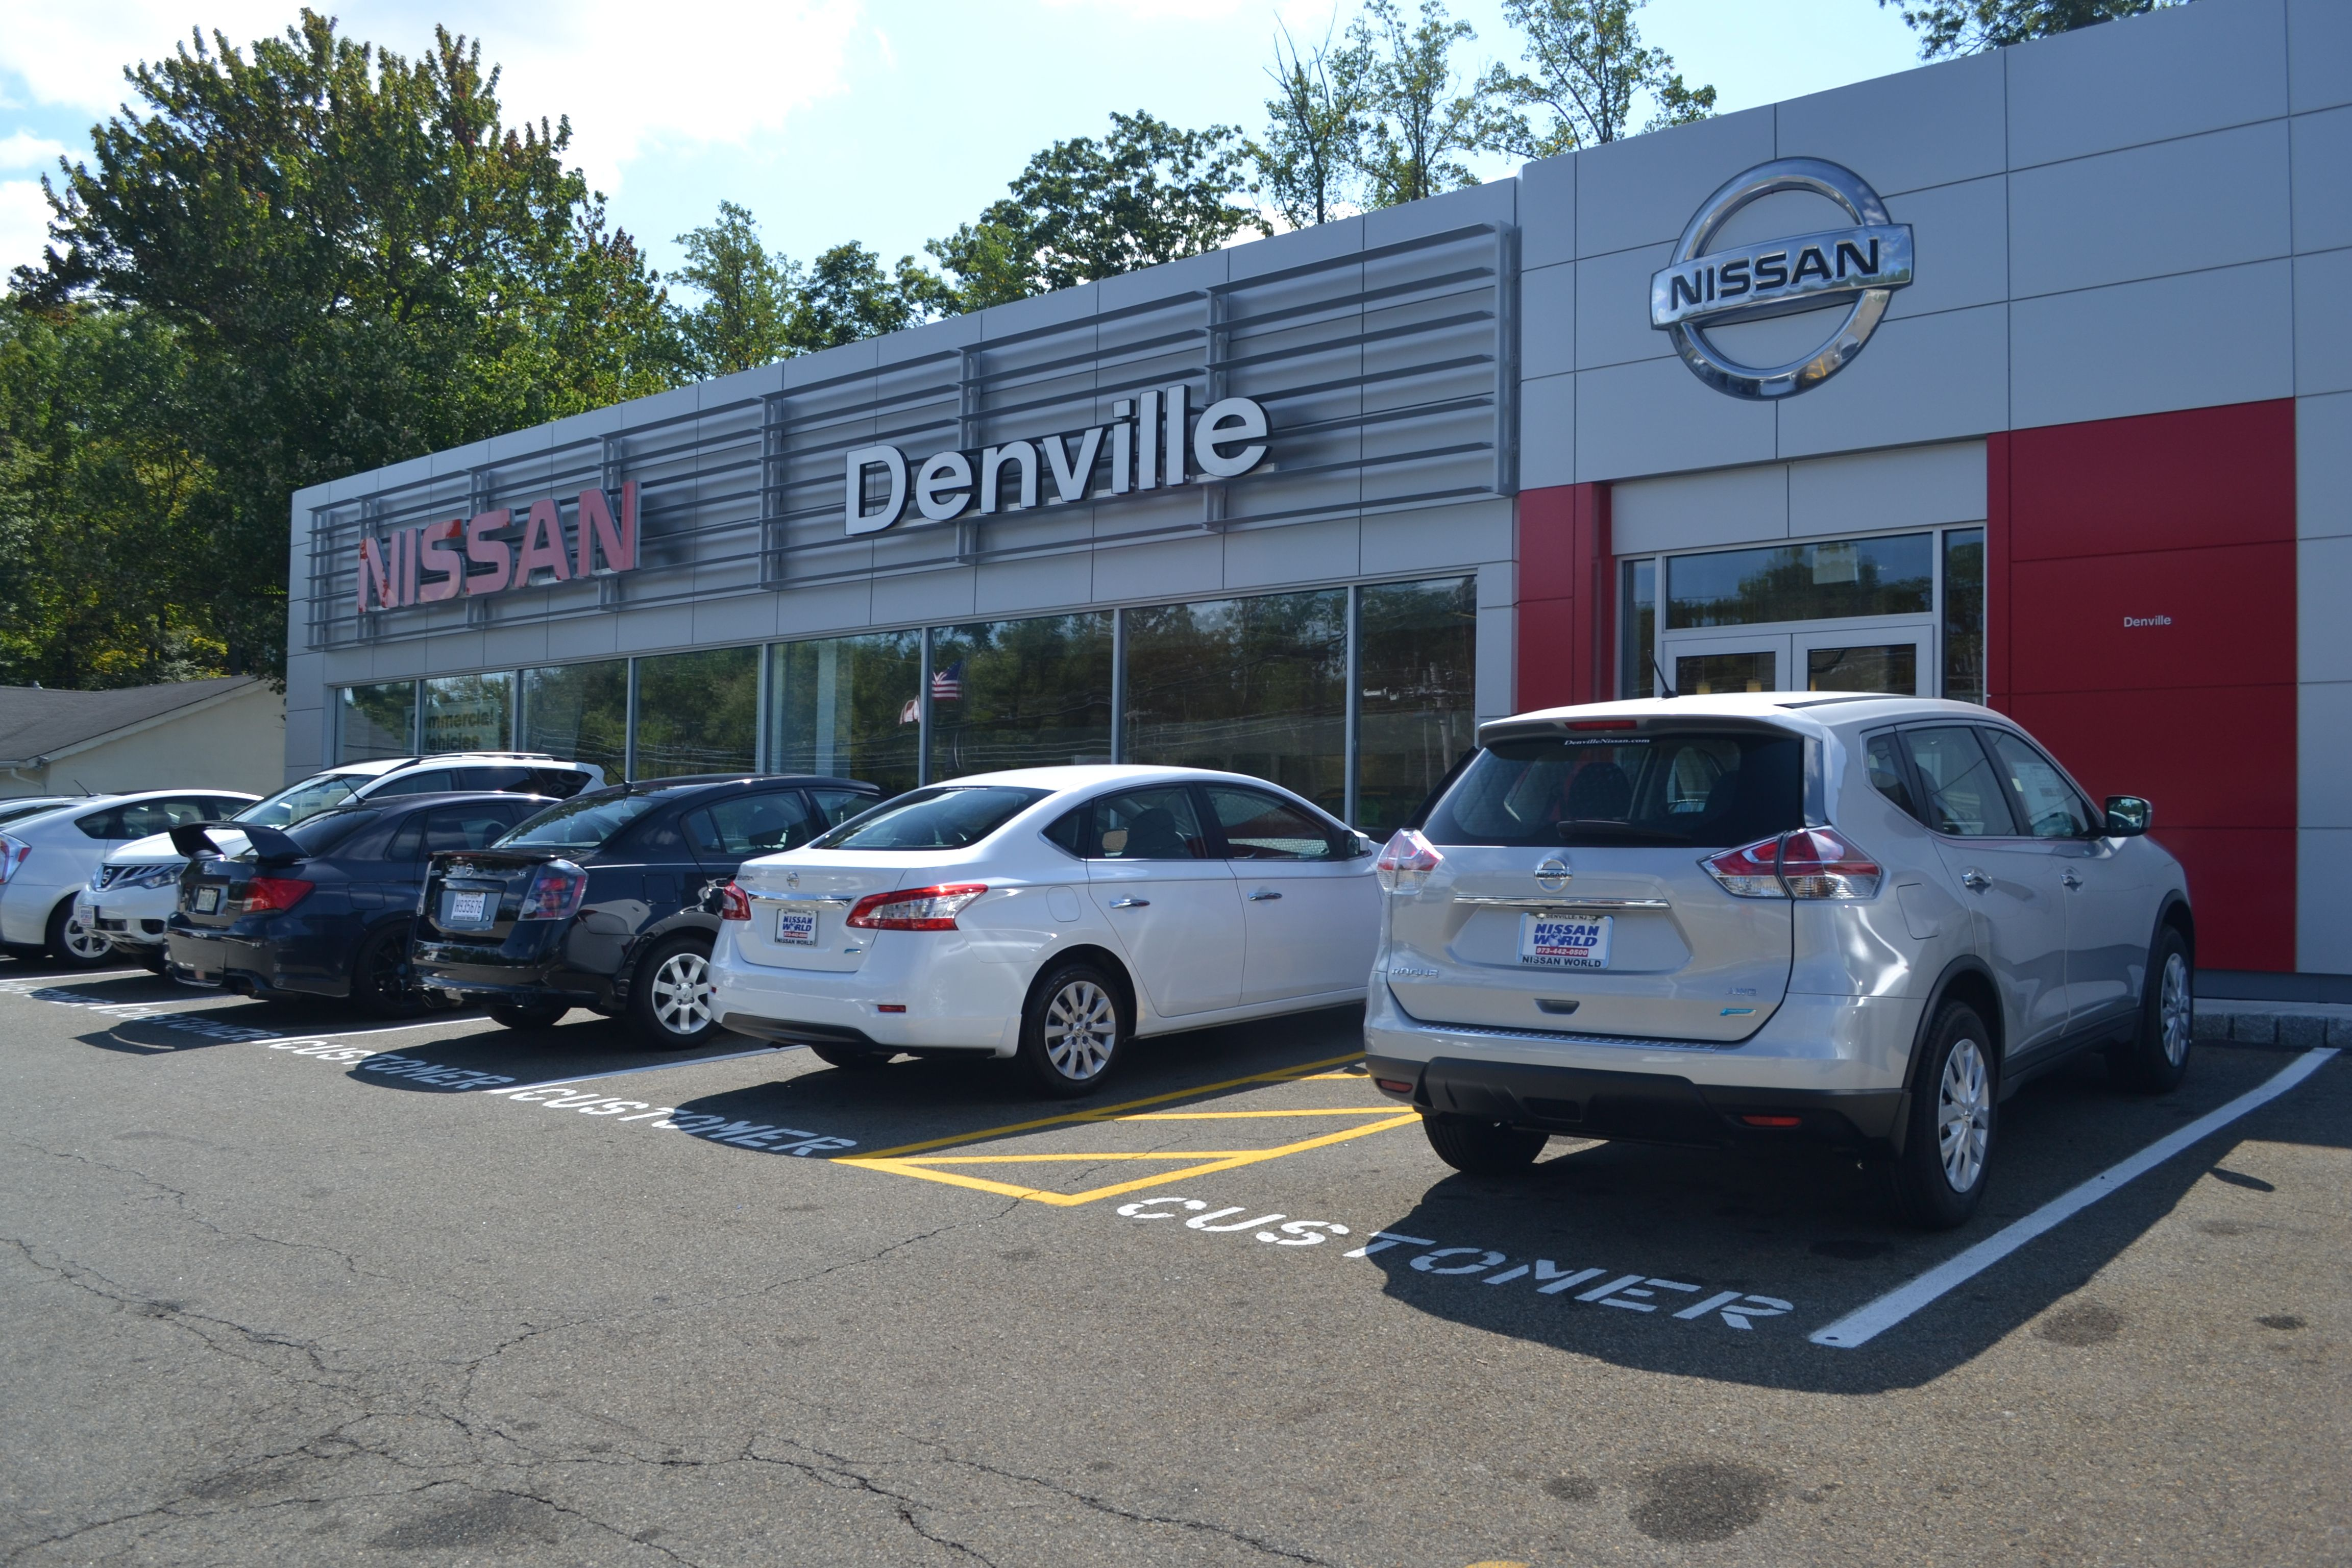 come visit us at nissan world of denville nissan dealership car dealership pinterest